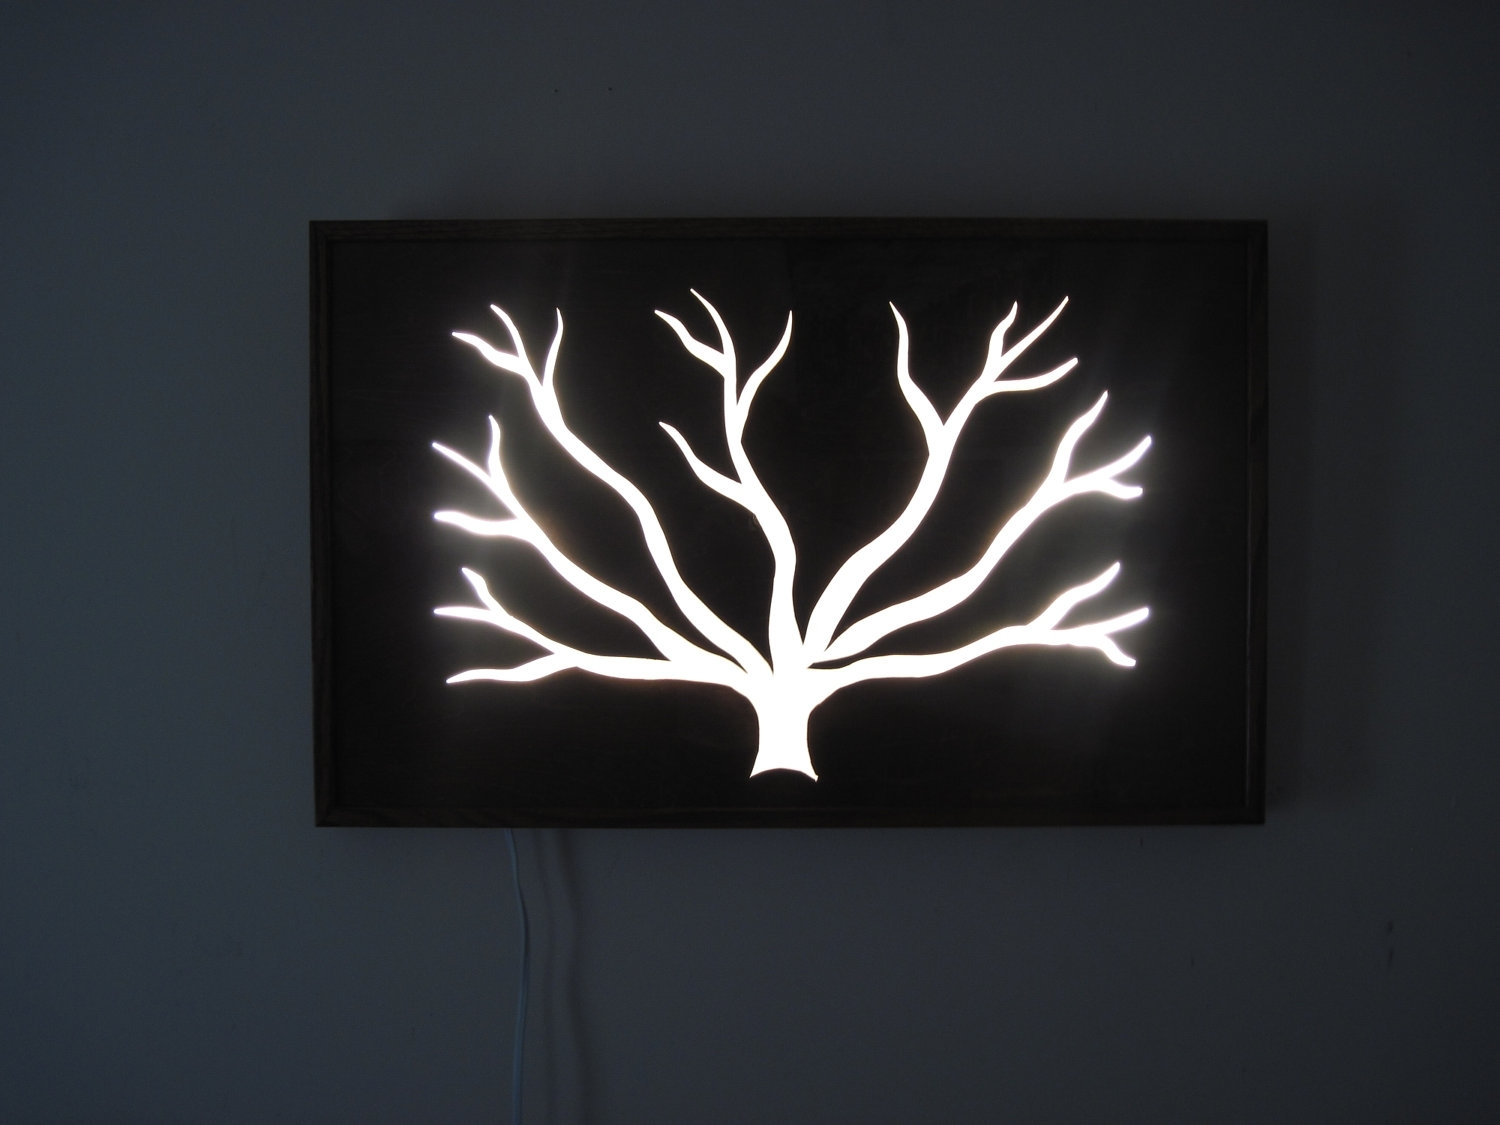 45 Lighted Wall Art, Metal Wall Art With Infused Color Changing Led Regarding Current Lighted Wall Art (View 4 of 20)